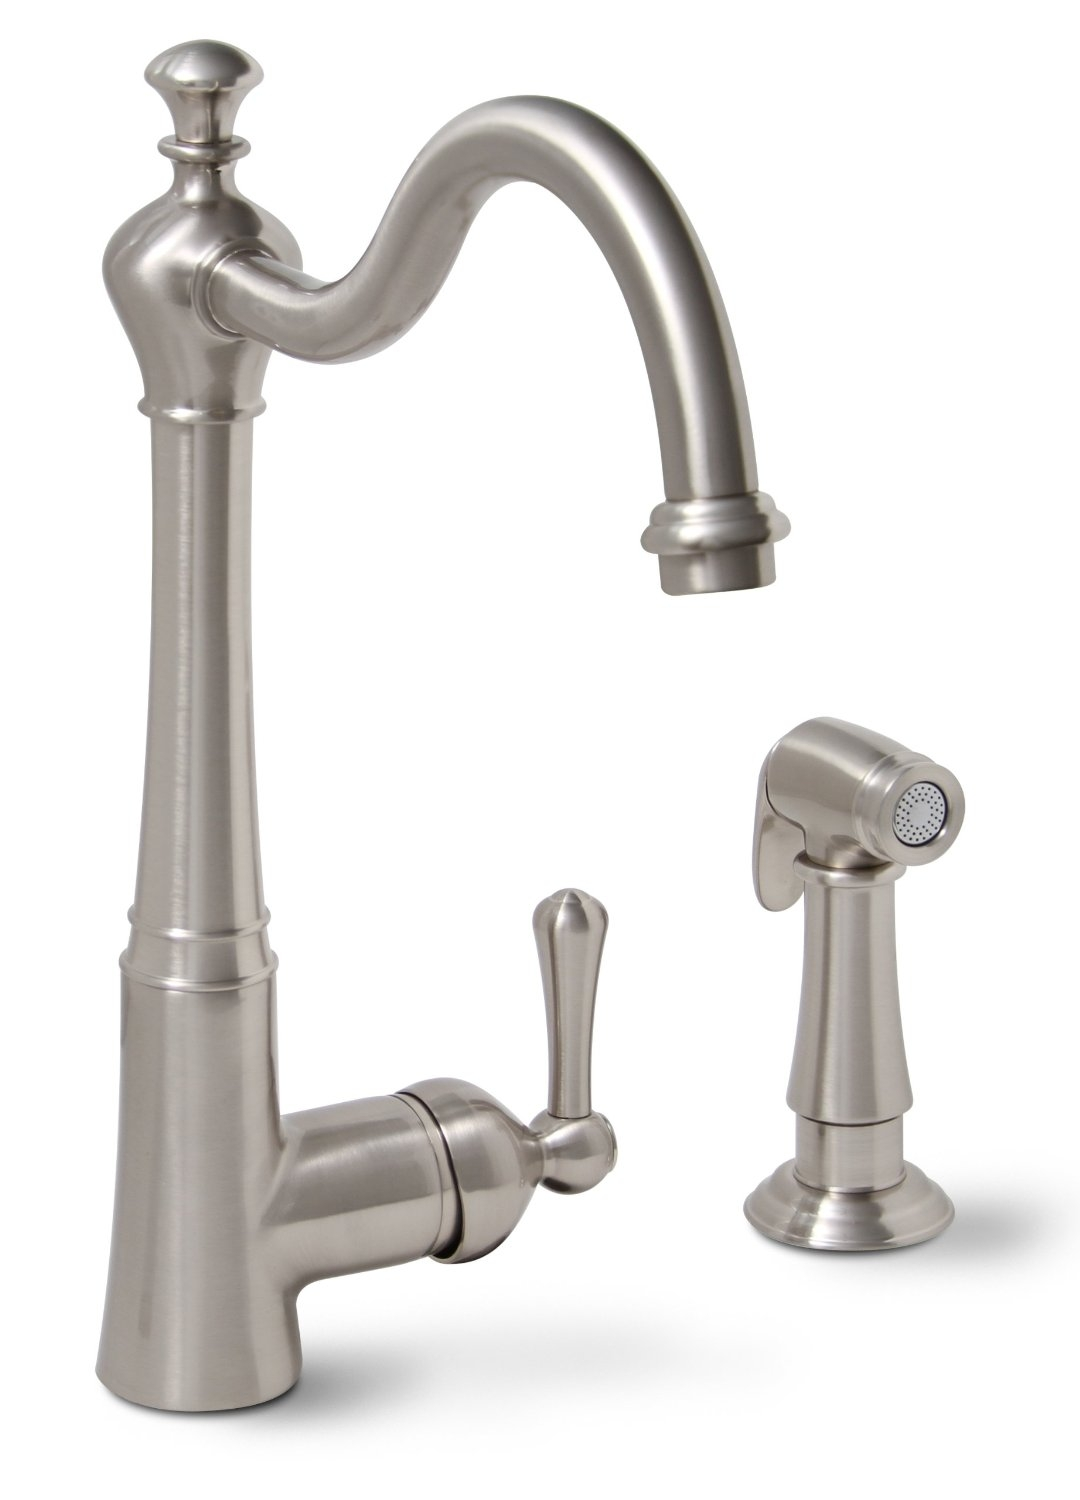 Ideas, best kitchen faucet with separate sprayer best kitchen faucet with separate sprayer top 5 best kitchen faucets reviews top 5 best 1080 x 1500  .